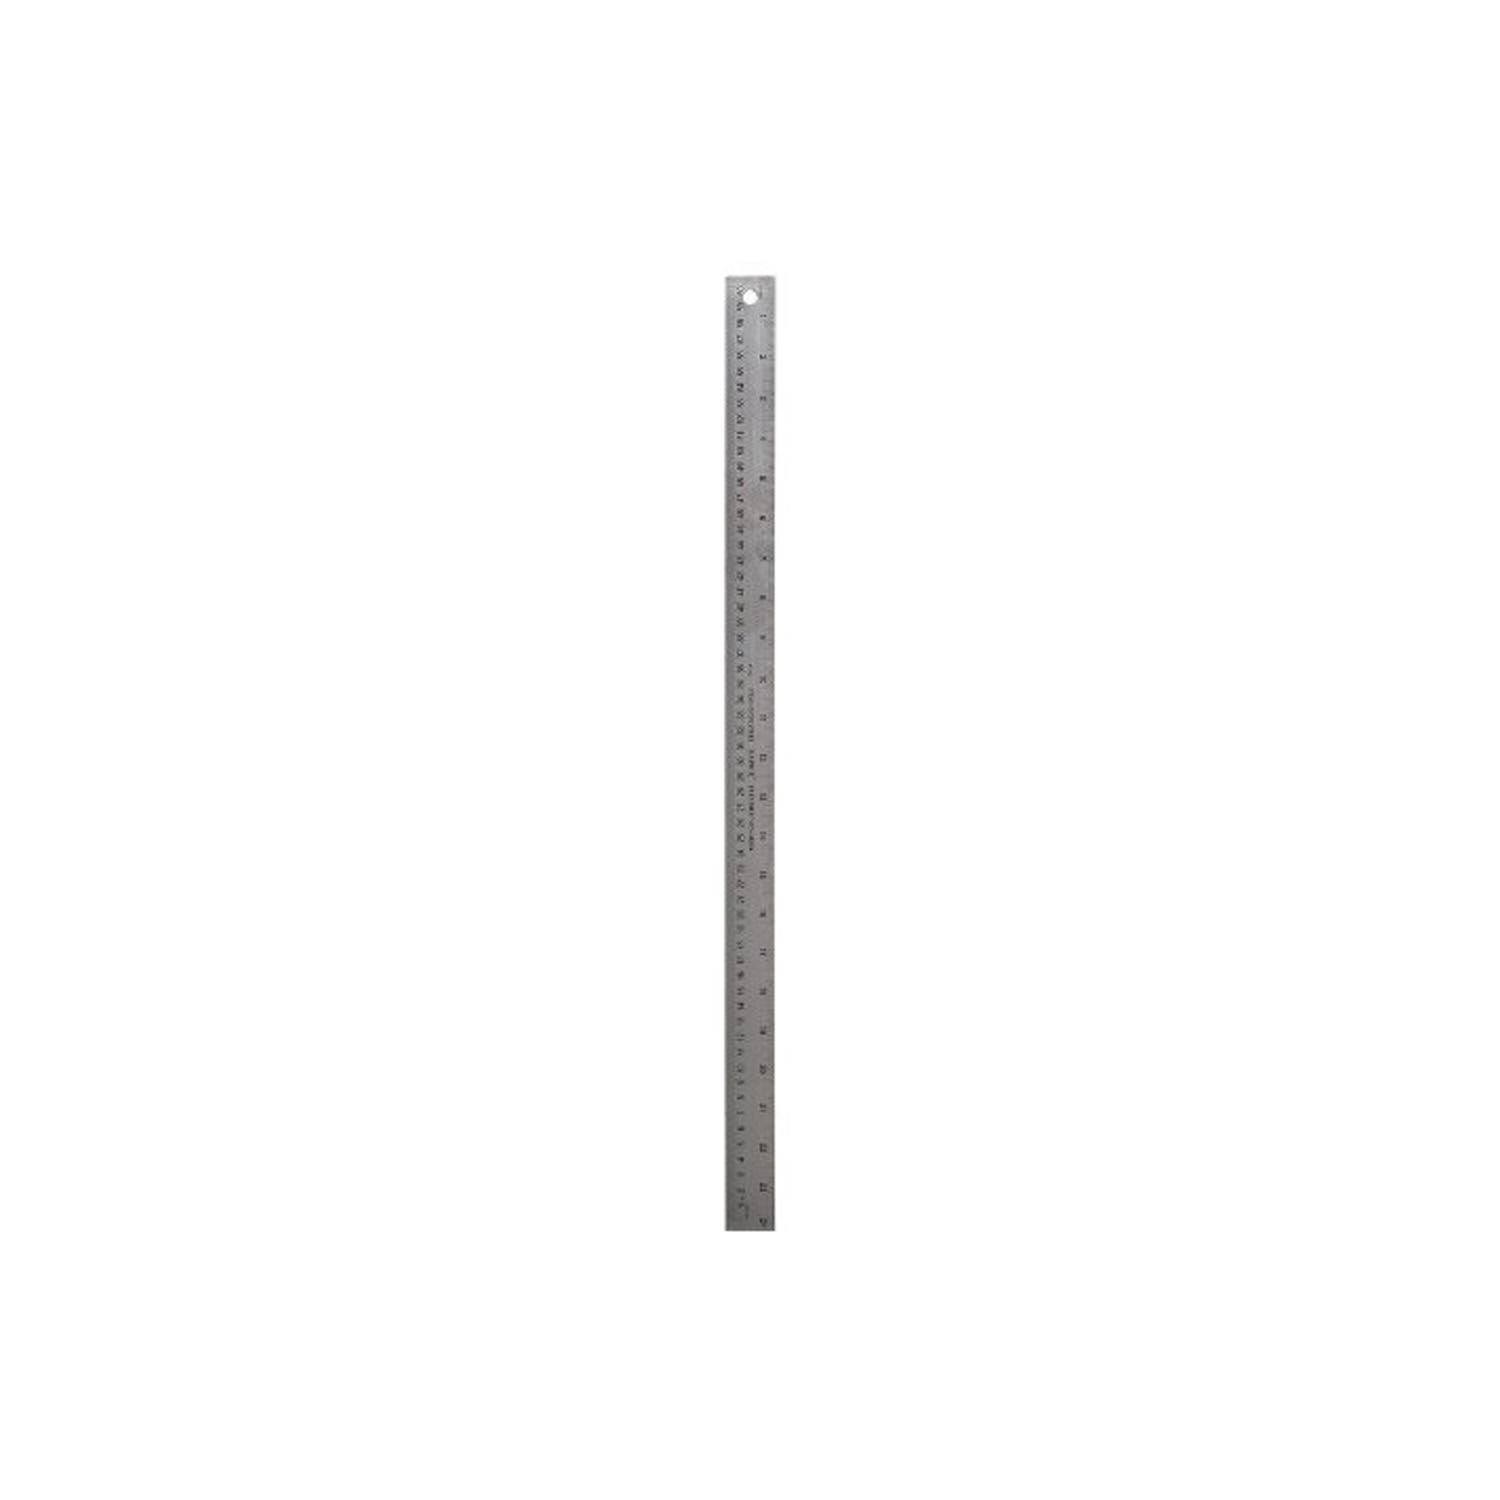 Darice 97305 Stainless Steel Ruler, 24-Inch